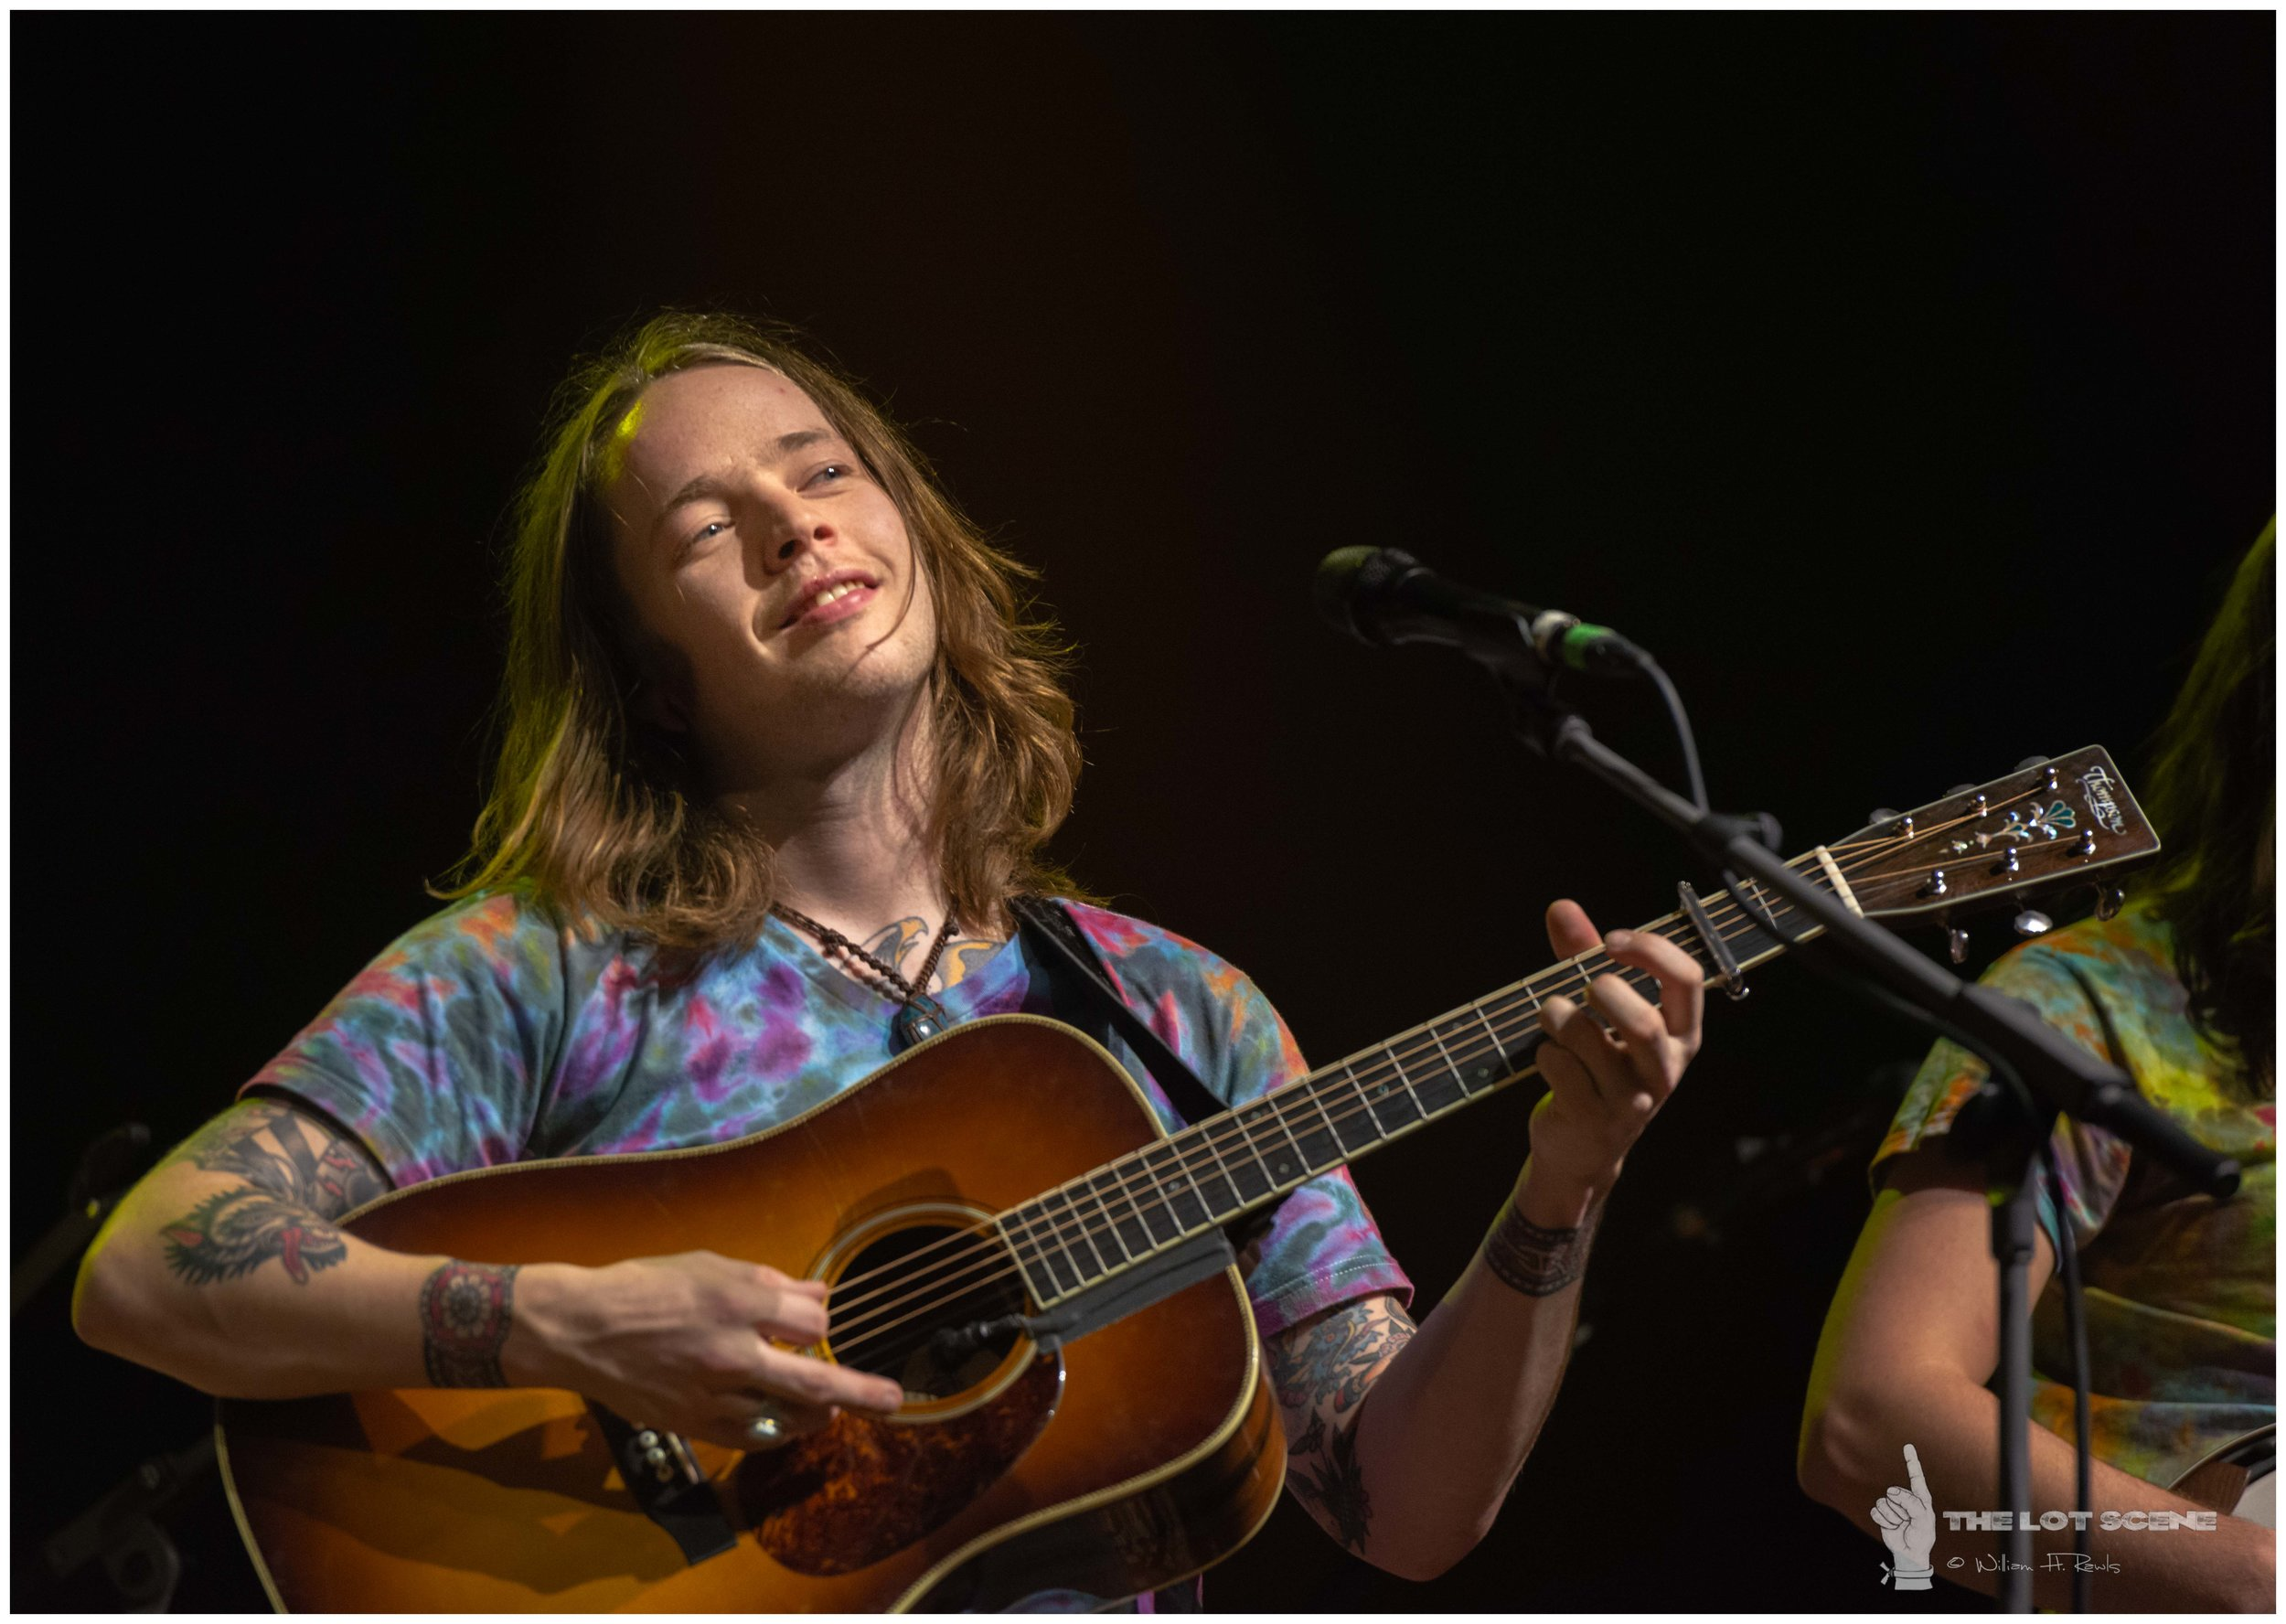 Billy Strings at The Anthem DC - February 2 2019 - 5.jpg